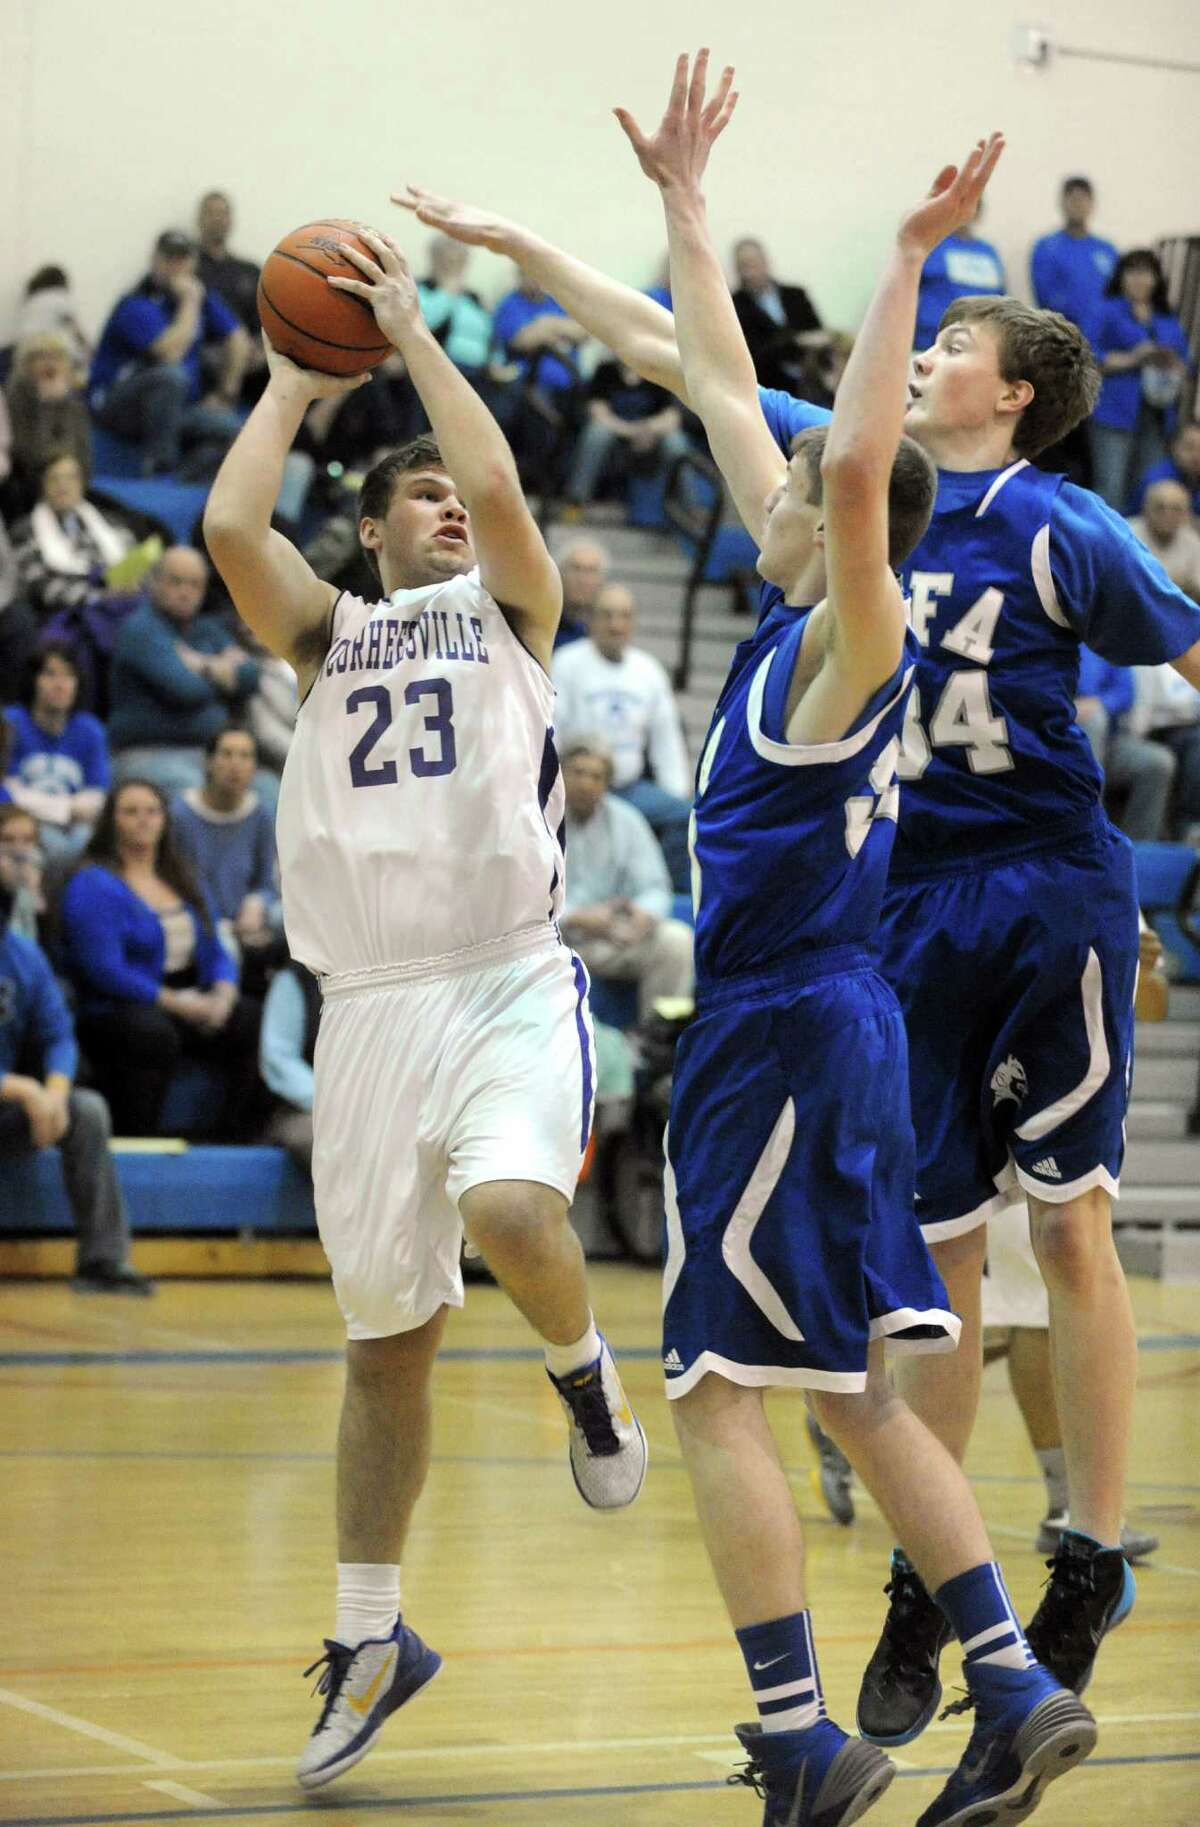 Voorheesville's Logan Hotaling goes to the basket during their Class B state regional boys' basketball game against Ogdensburg Free Academy on Tuesday March 4, 2014 in Saratoga Springs, N.Y. (Michael P. Farrell/Times Union)